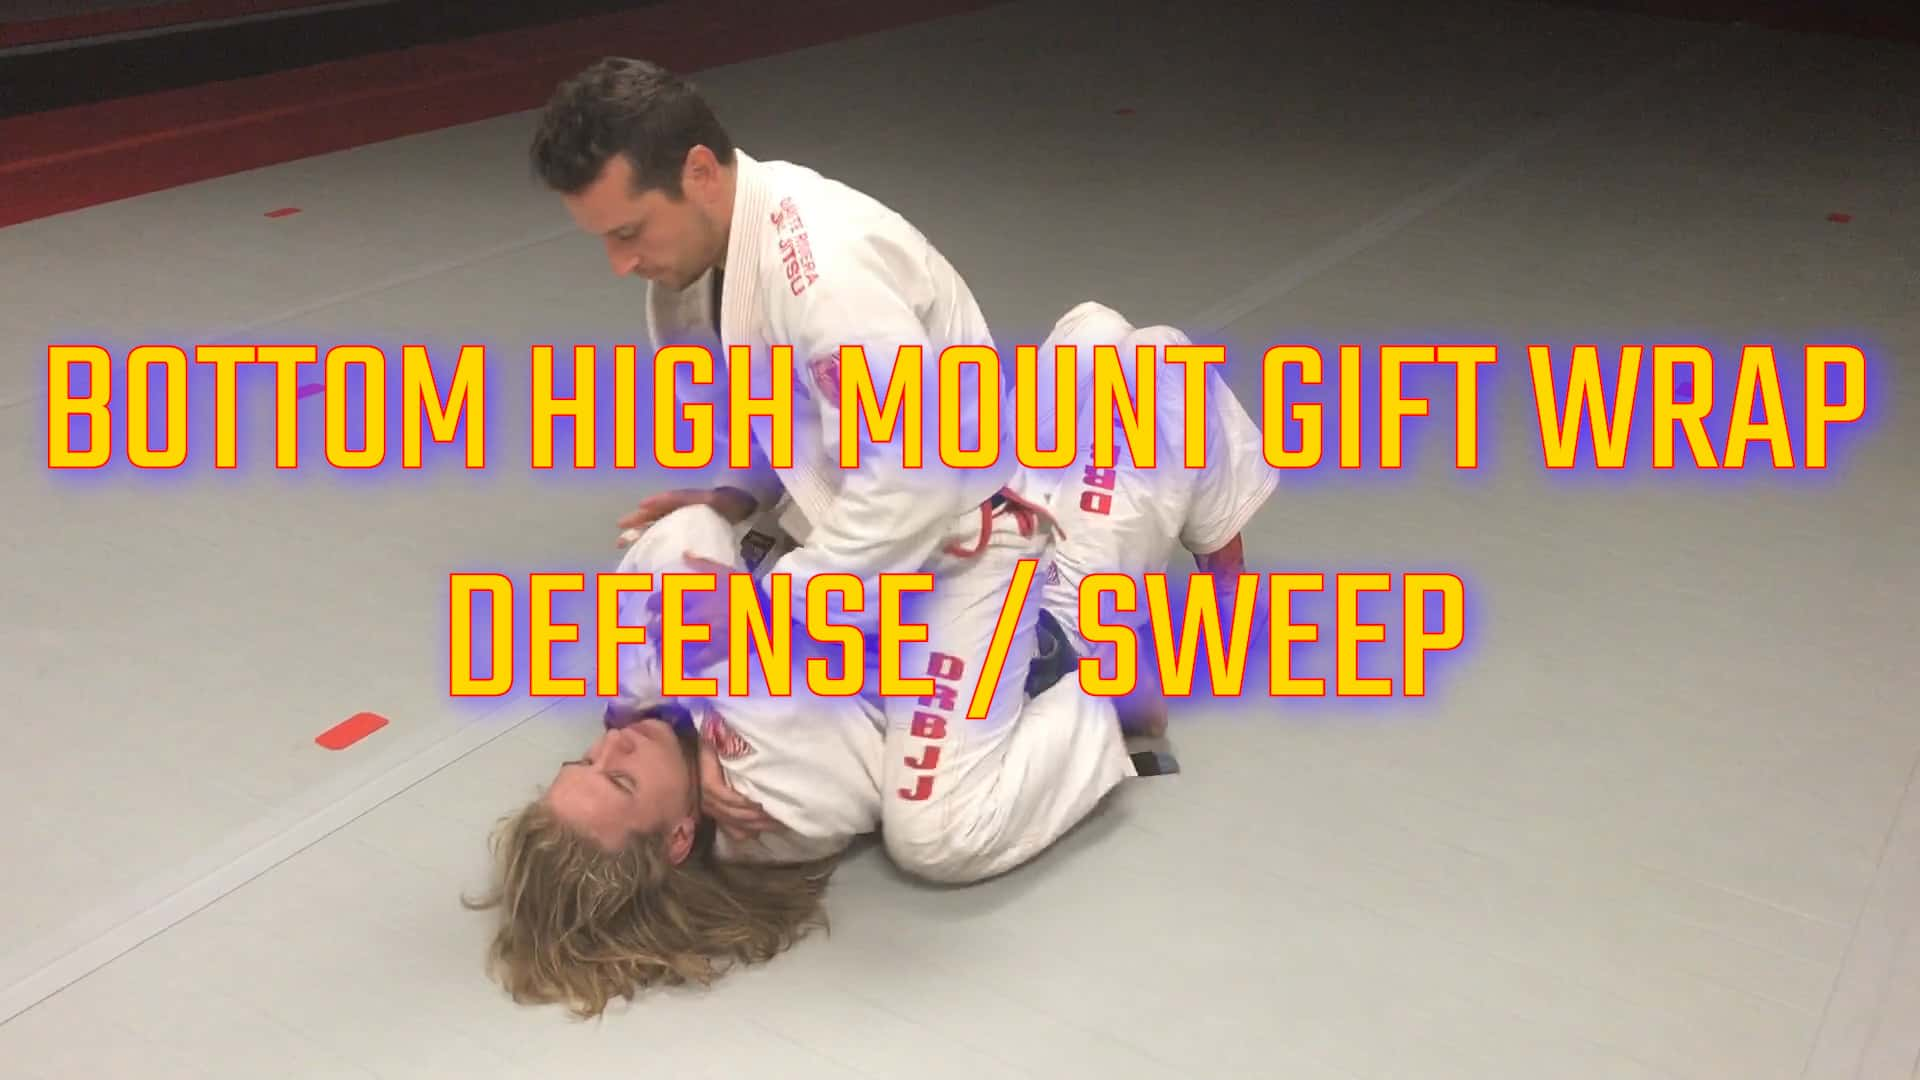 [VIDEO] Bottom High Mount Gift Wrap Defense / Sweep